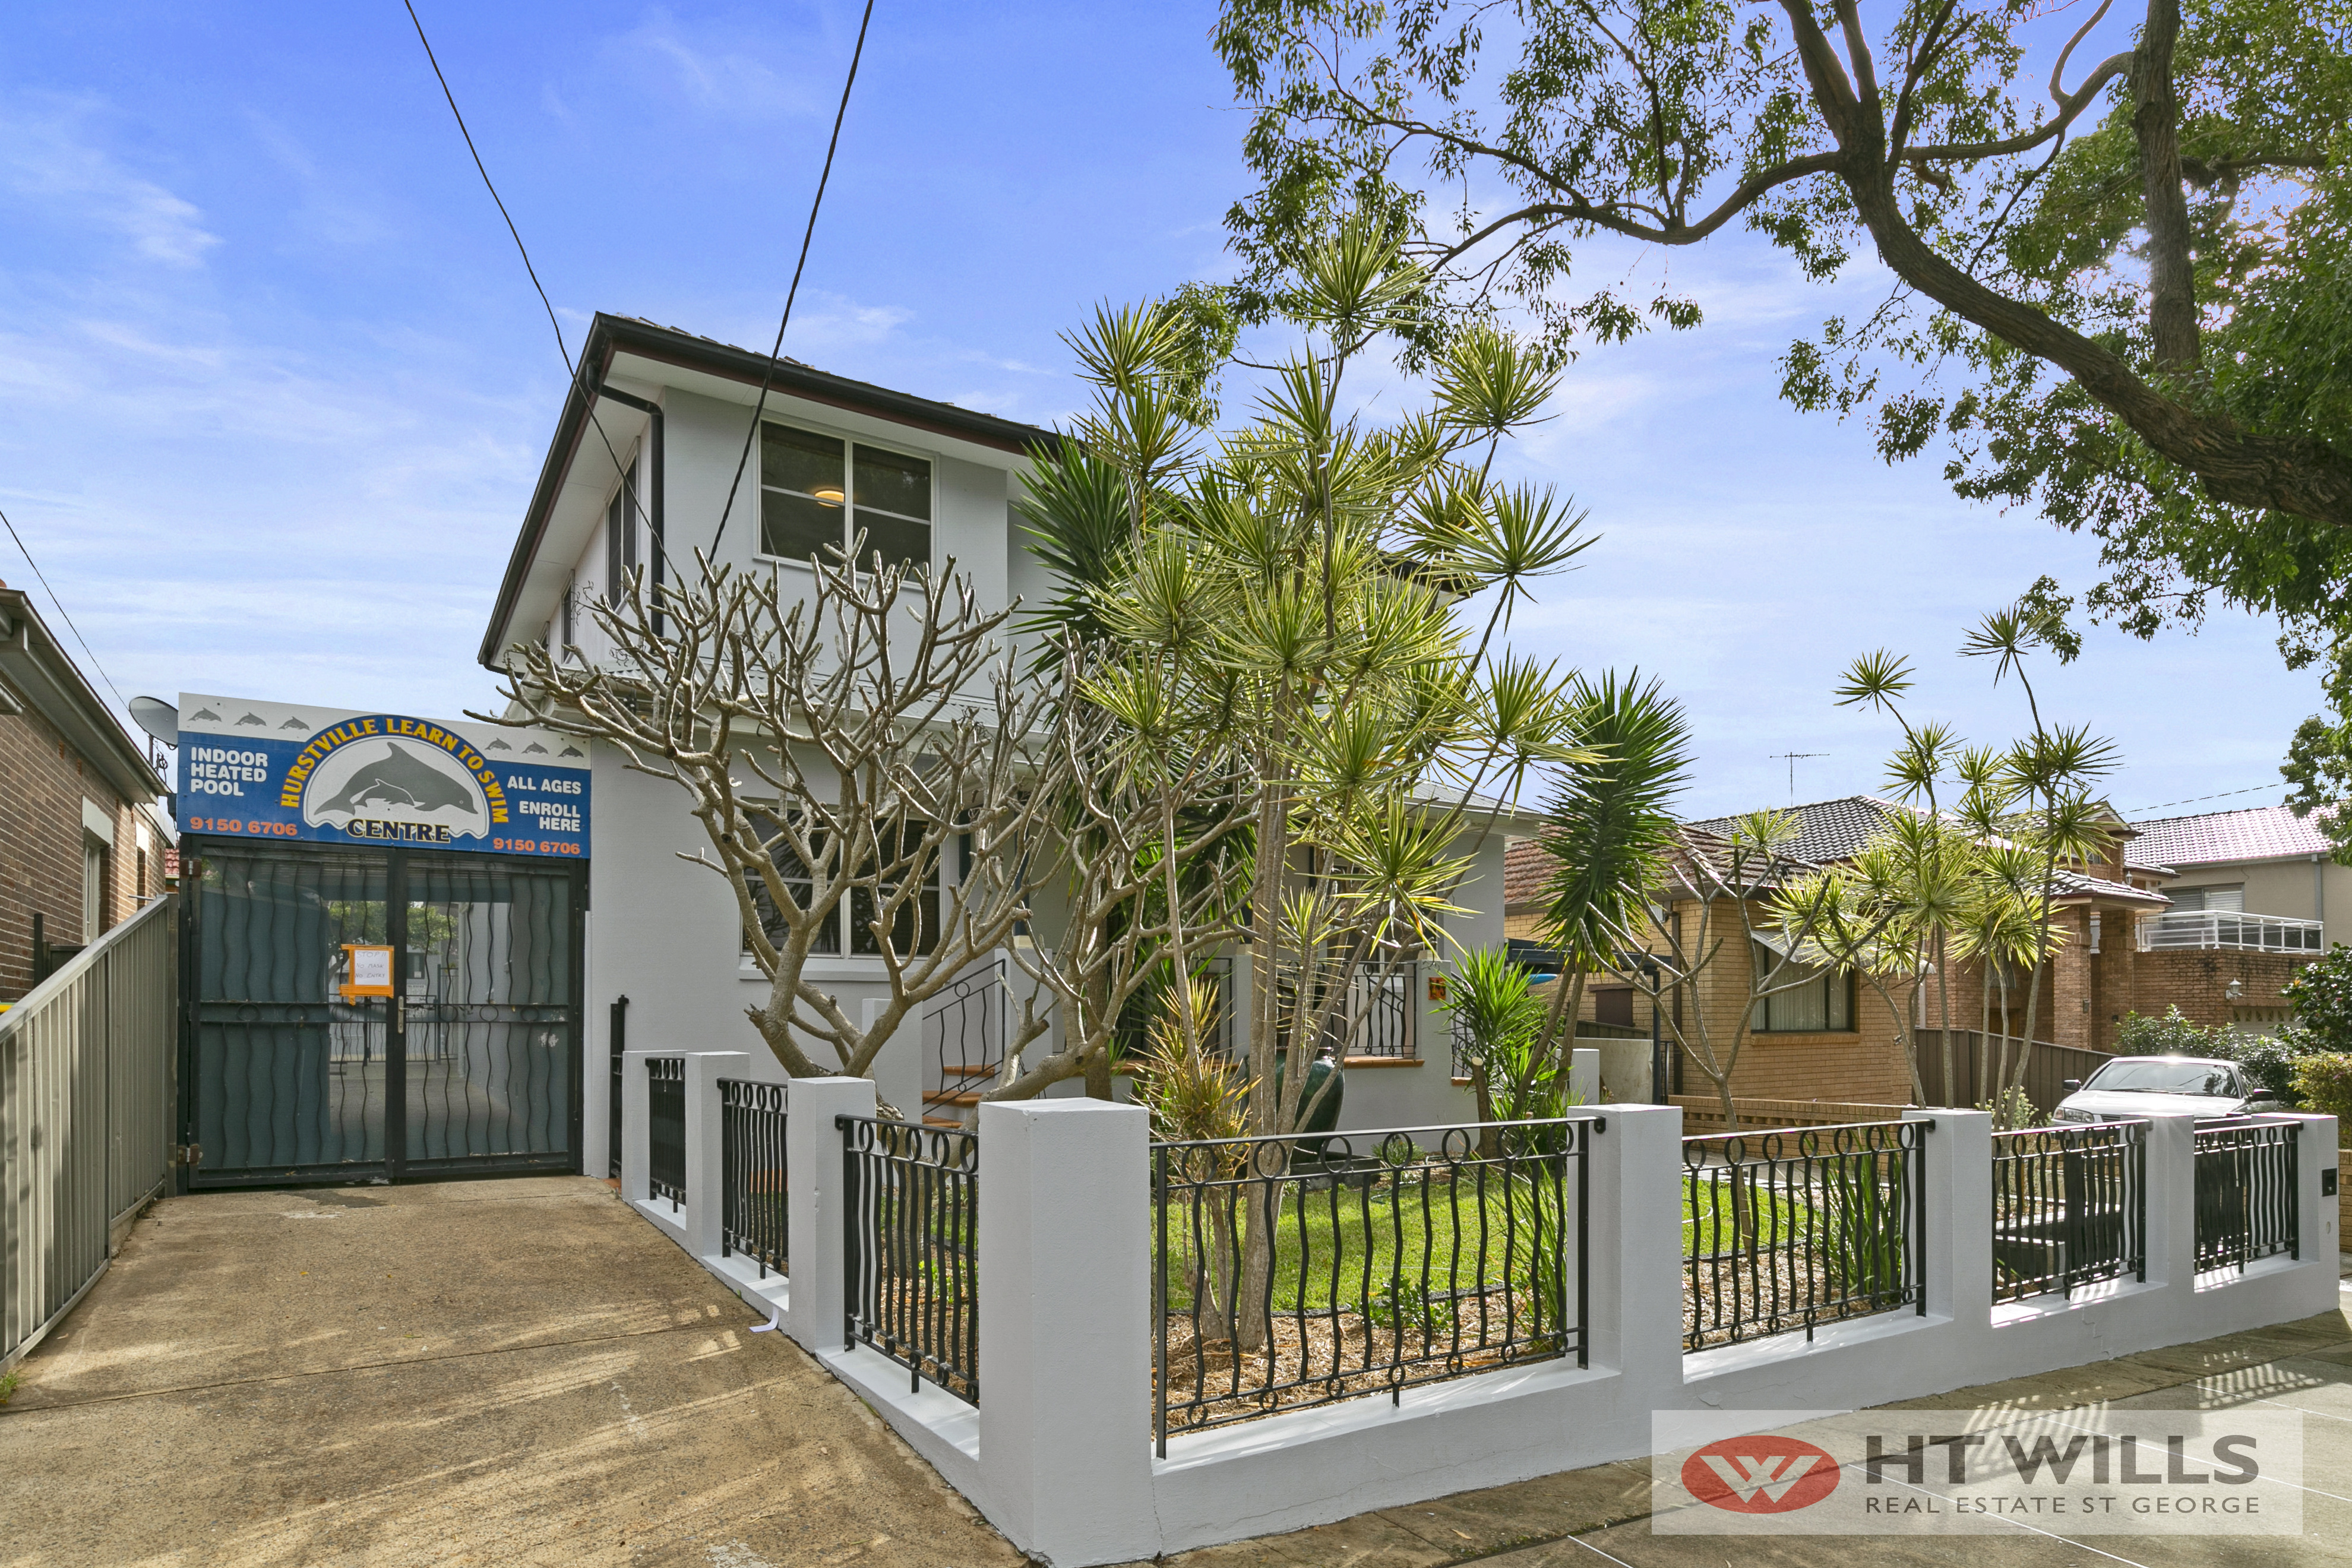 5 Bed Home on 650sqm land, Includes On-Site Swimming Centre Business'